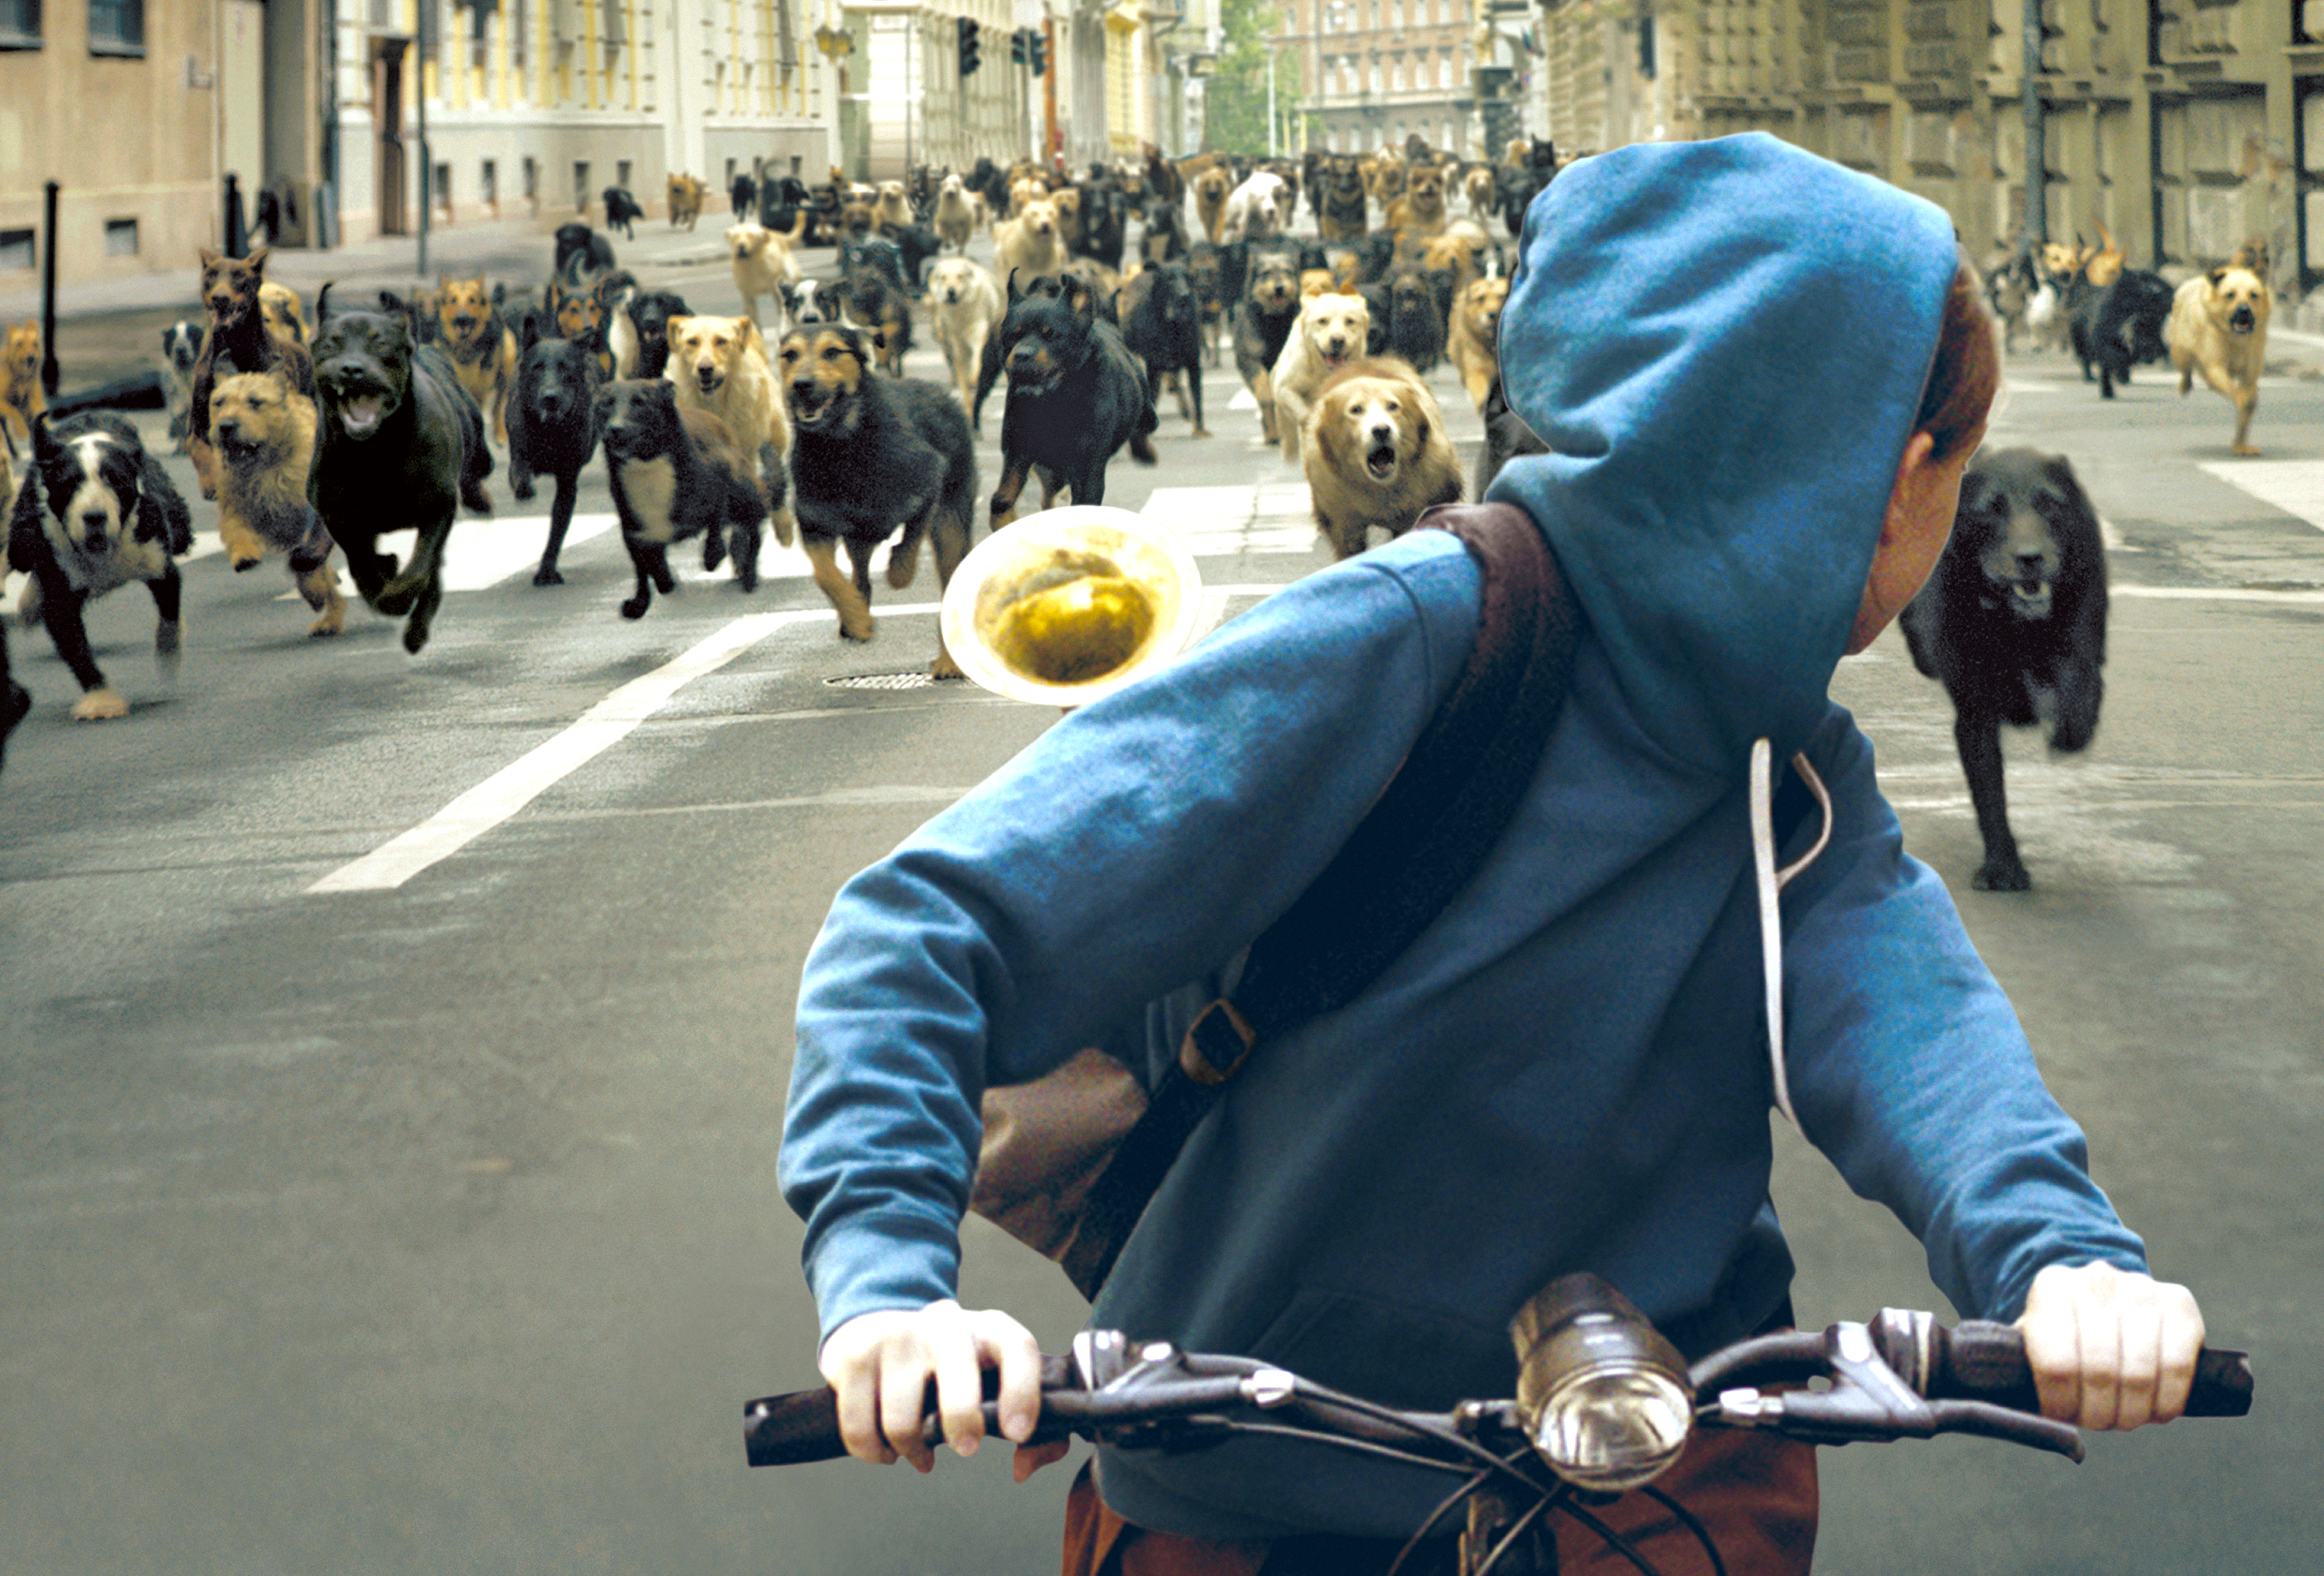 This image shows a scene from the Hungarian award winning movie, White God.